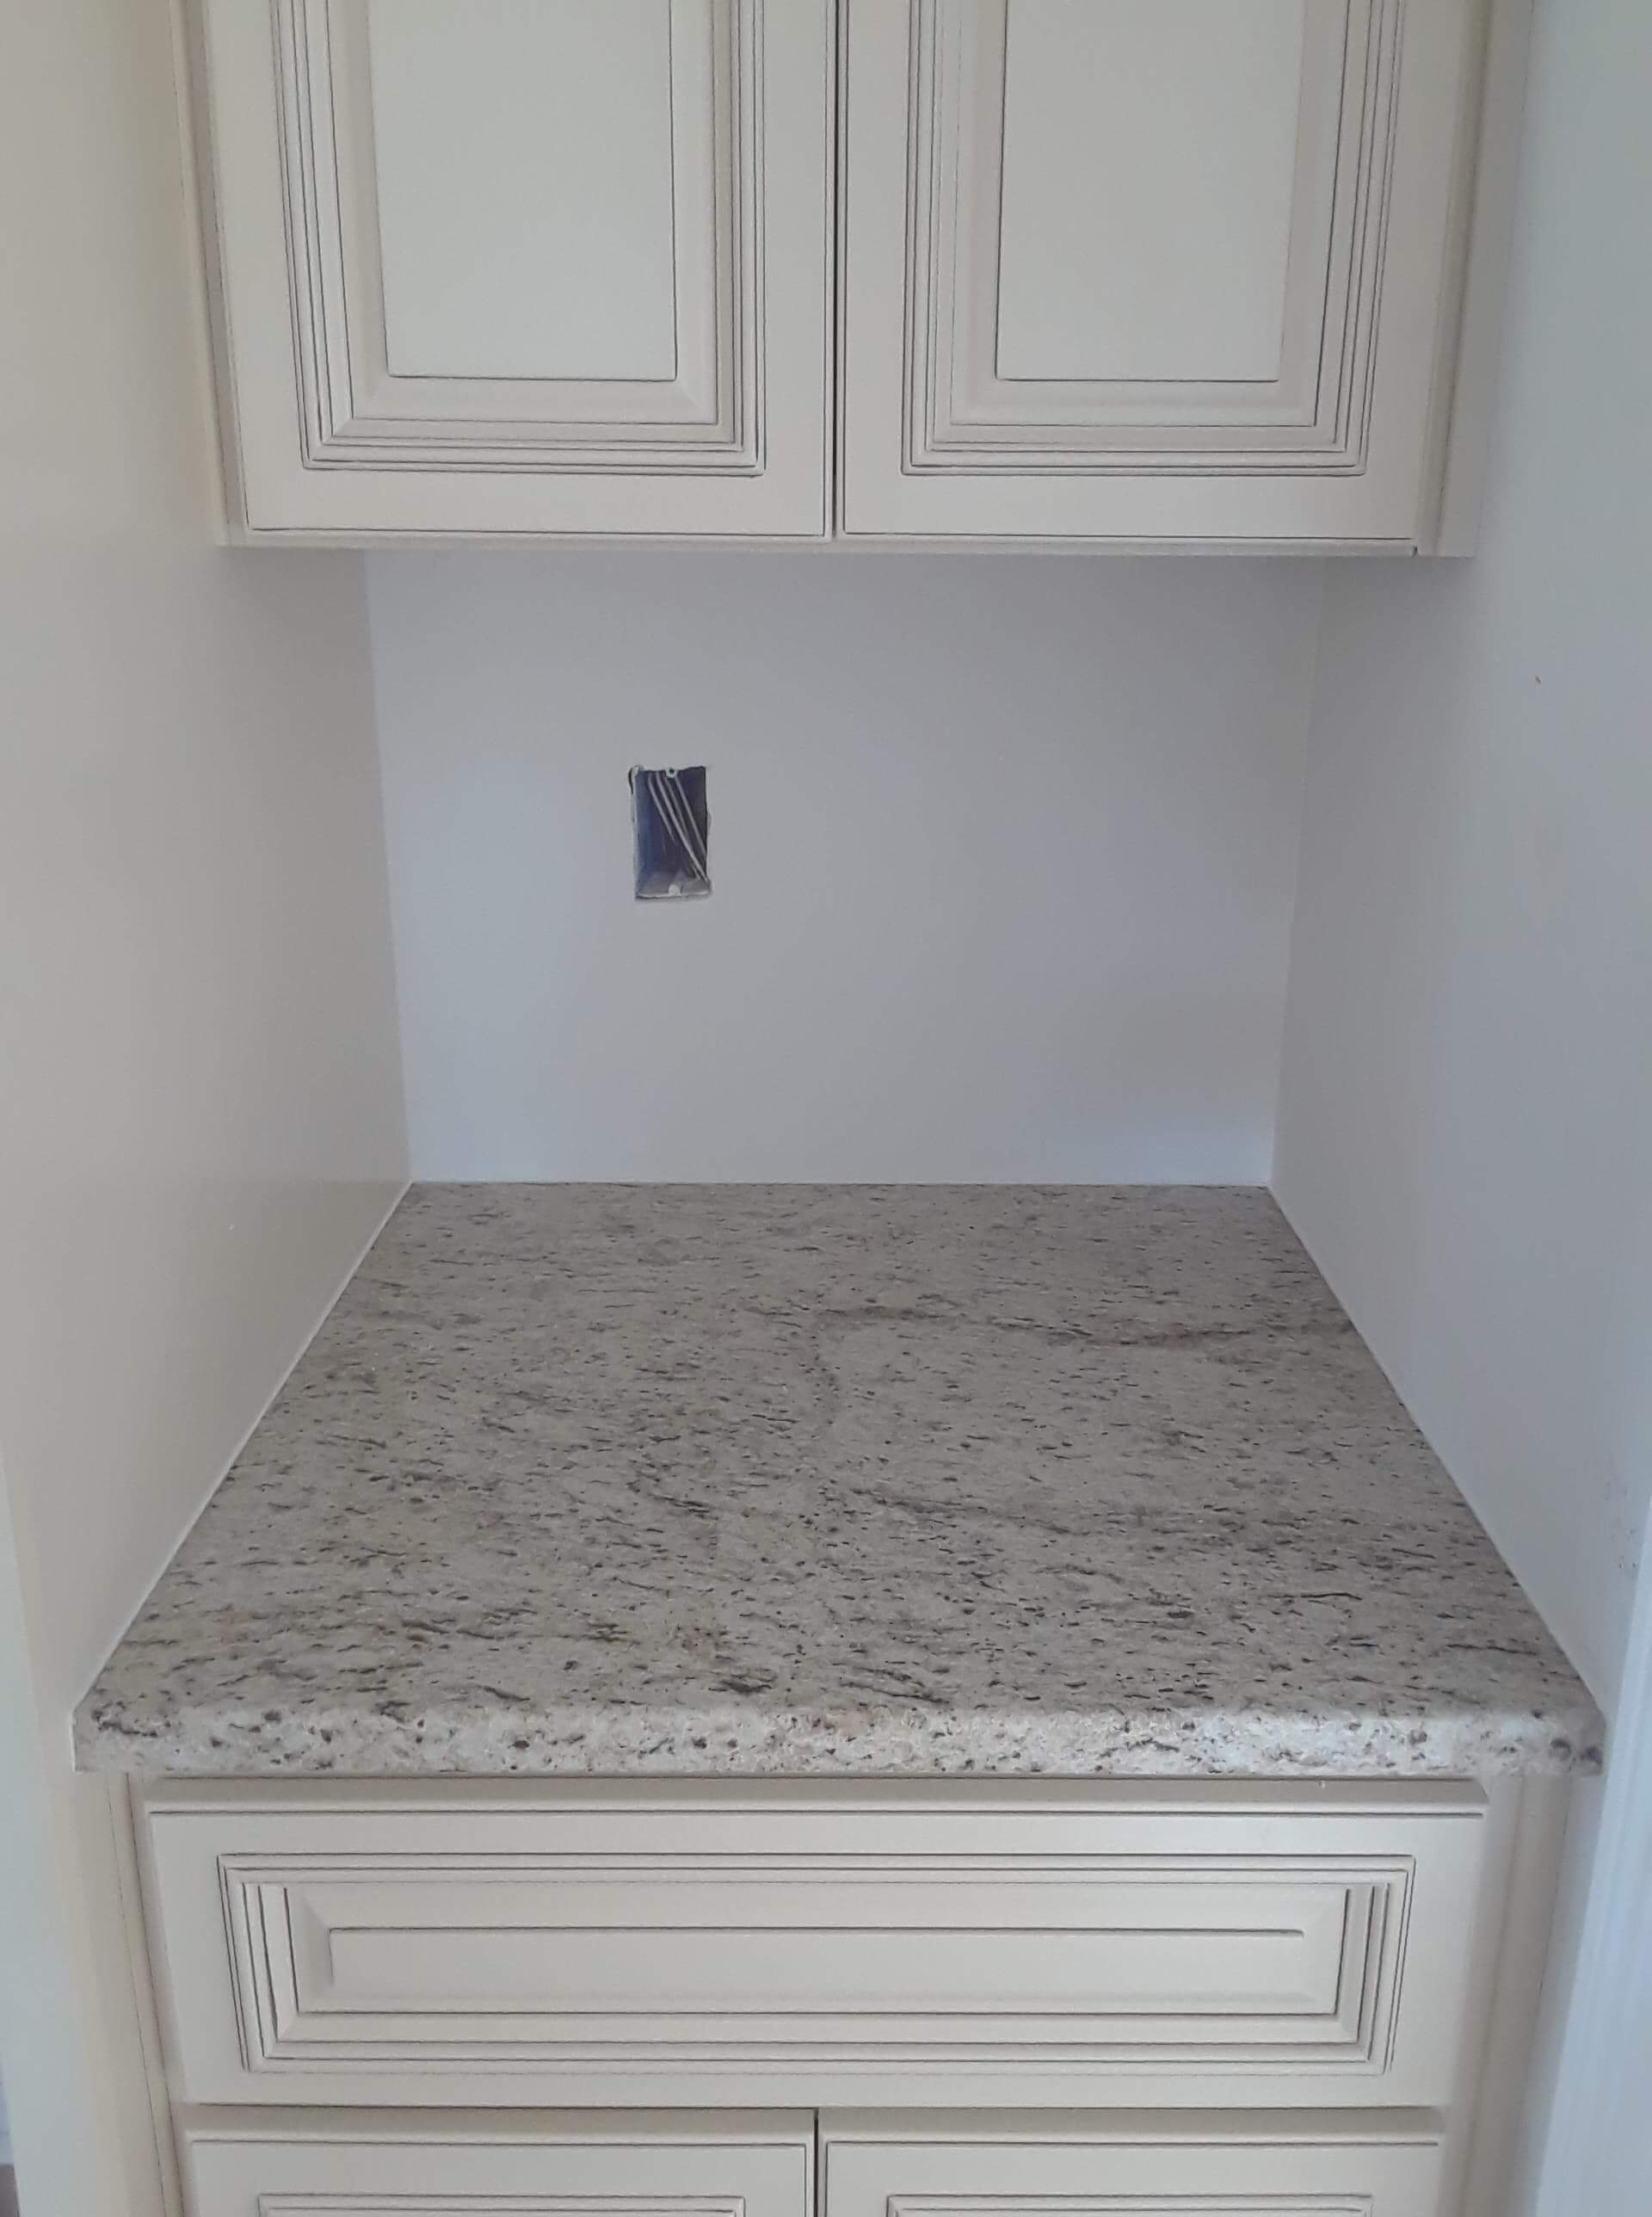 3cm Giallo Ornamental_Kitchen Countertop(9)_Liles